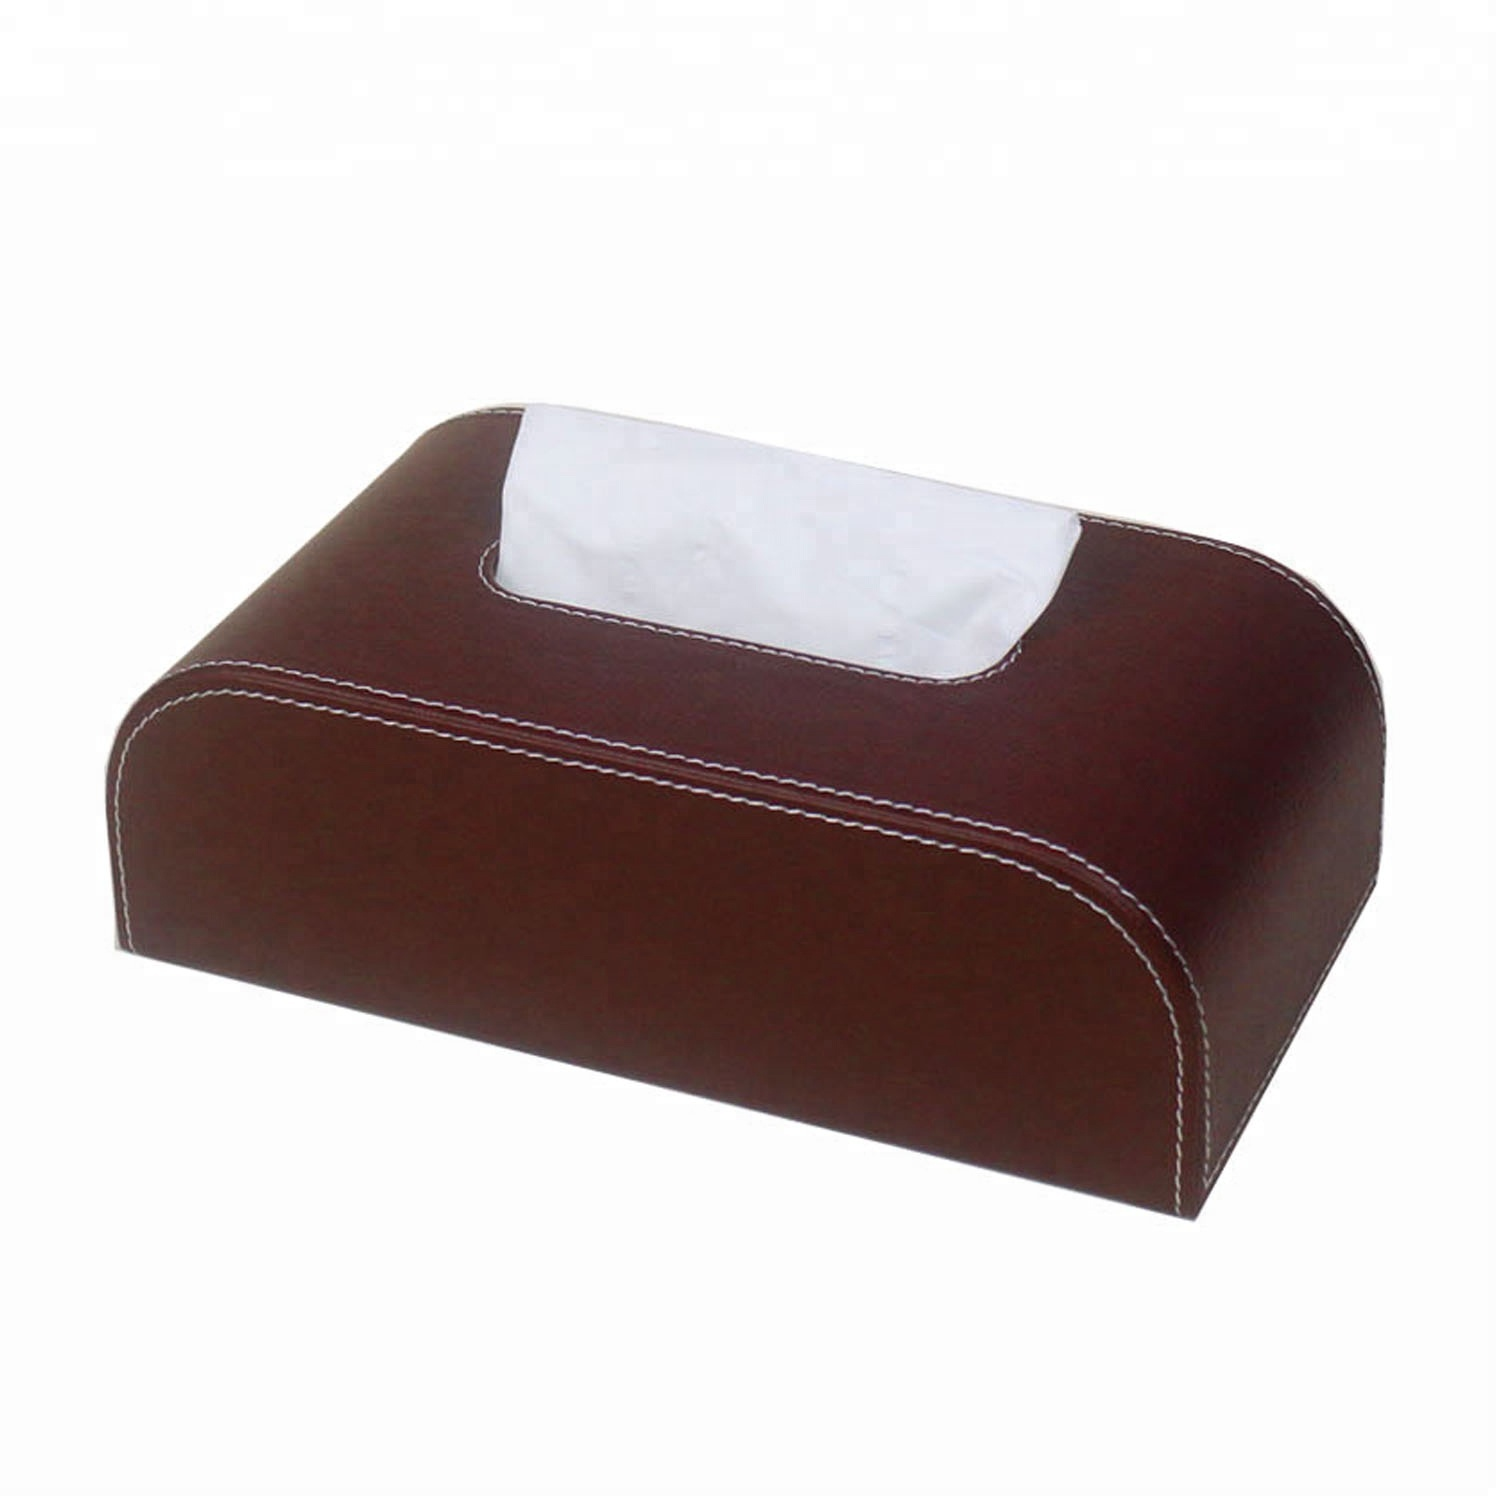 Handmade Craft Custom Leather Hotel Tissue Box